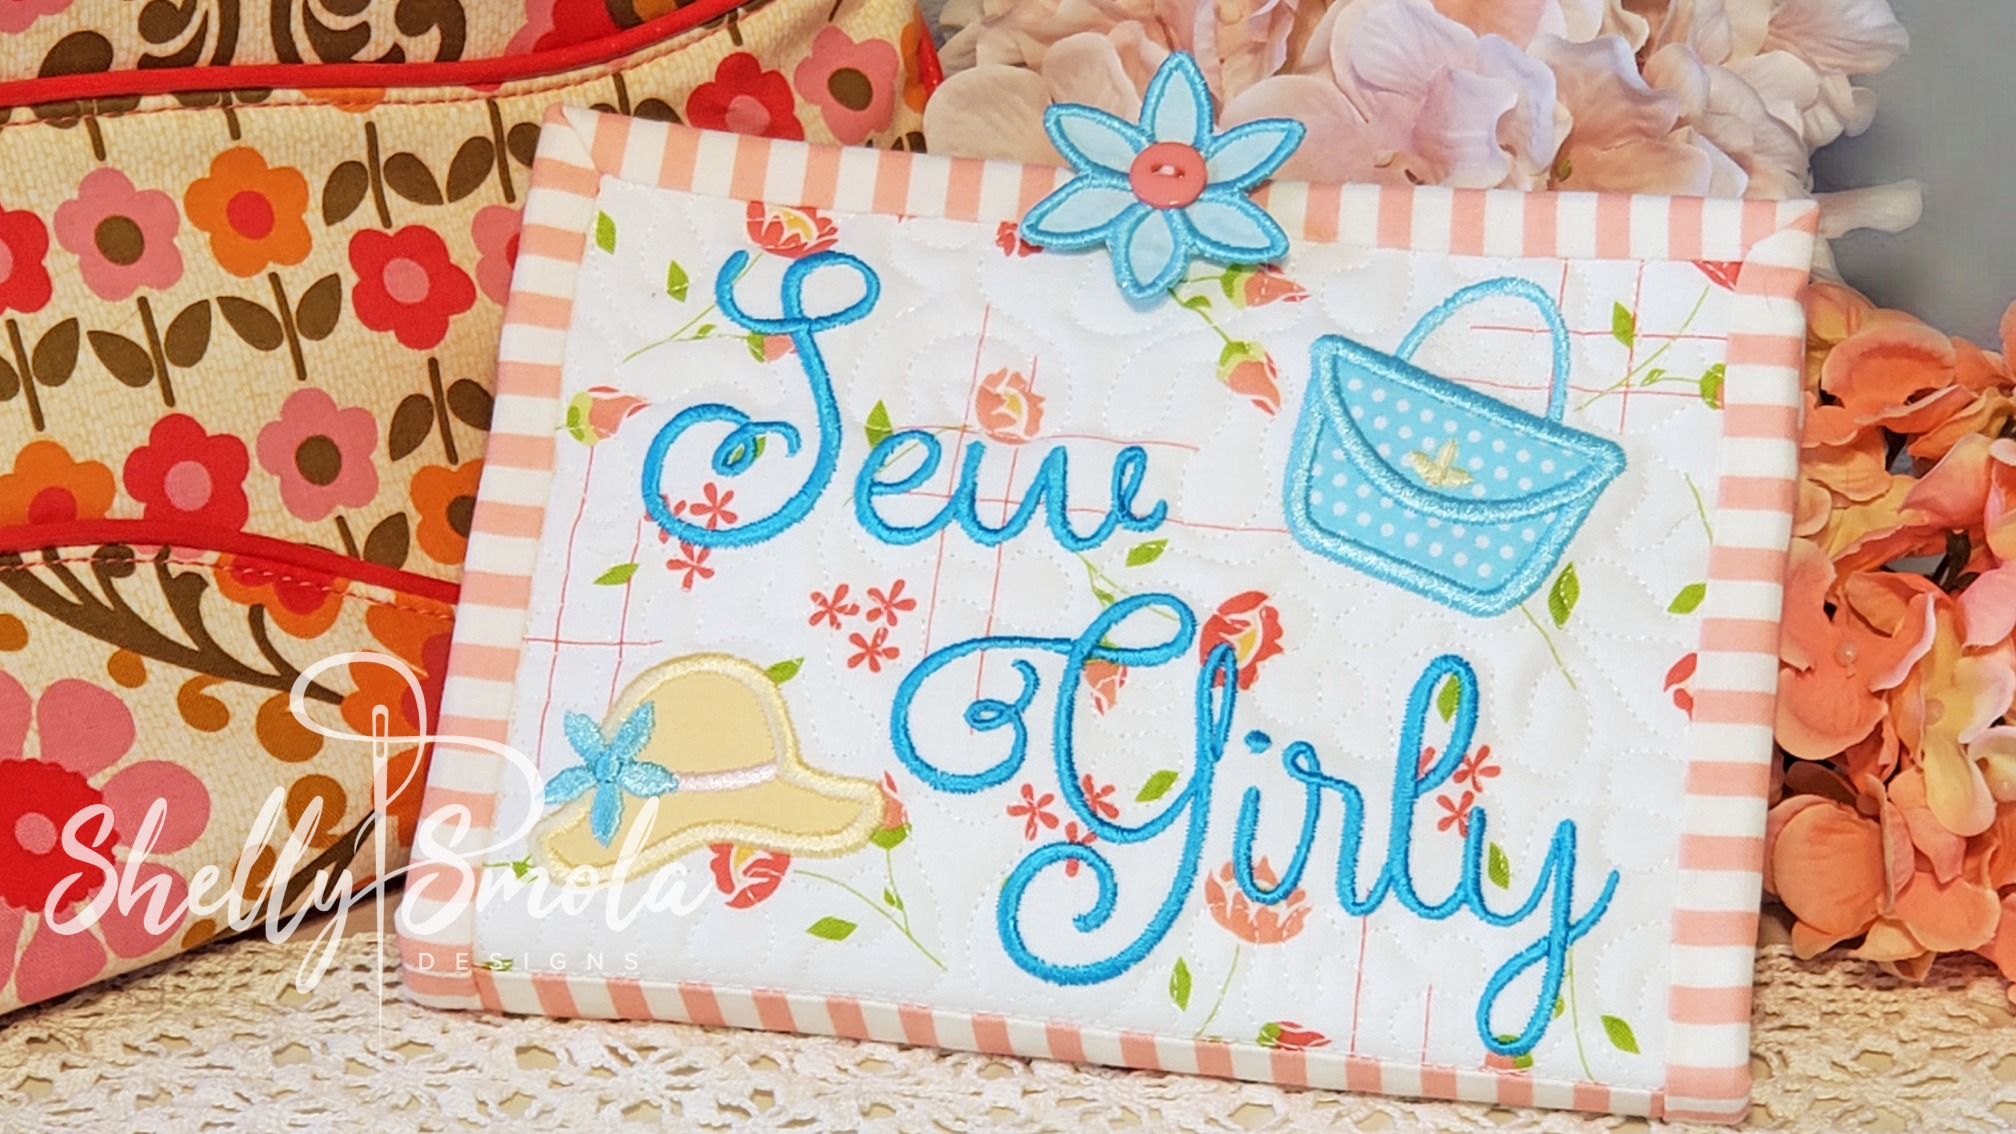 Sew Girly Makeup Case by Shelly Smola